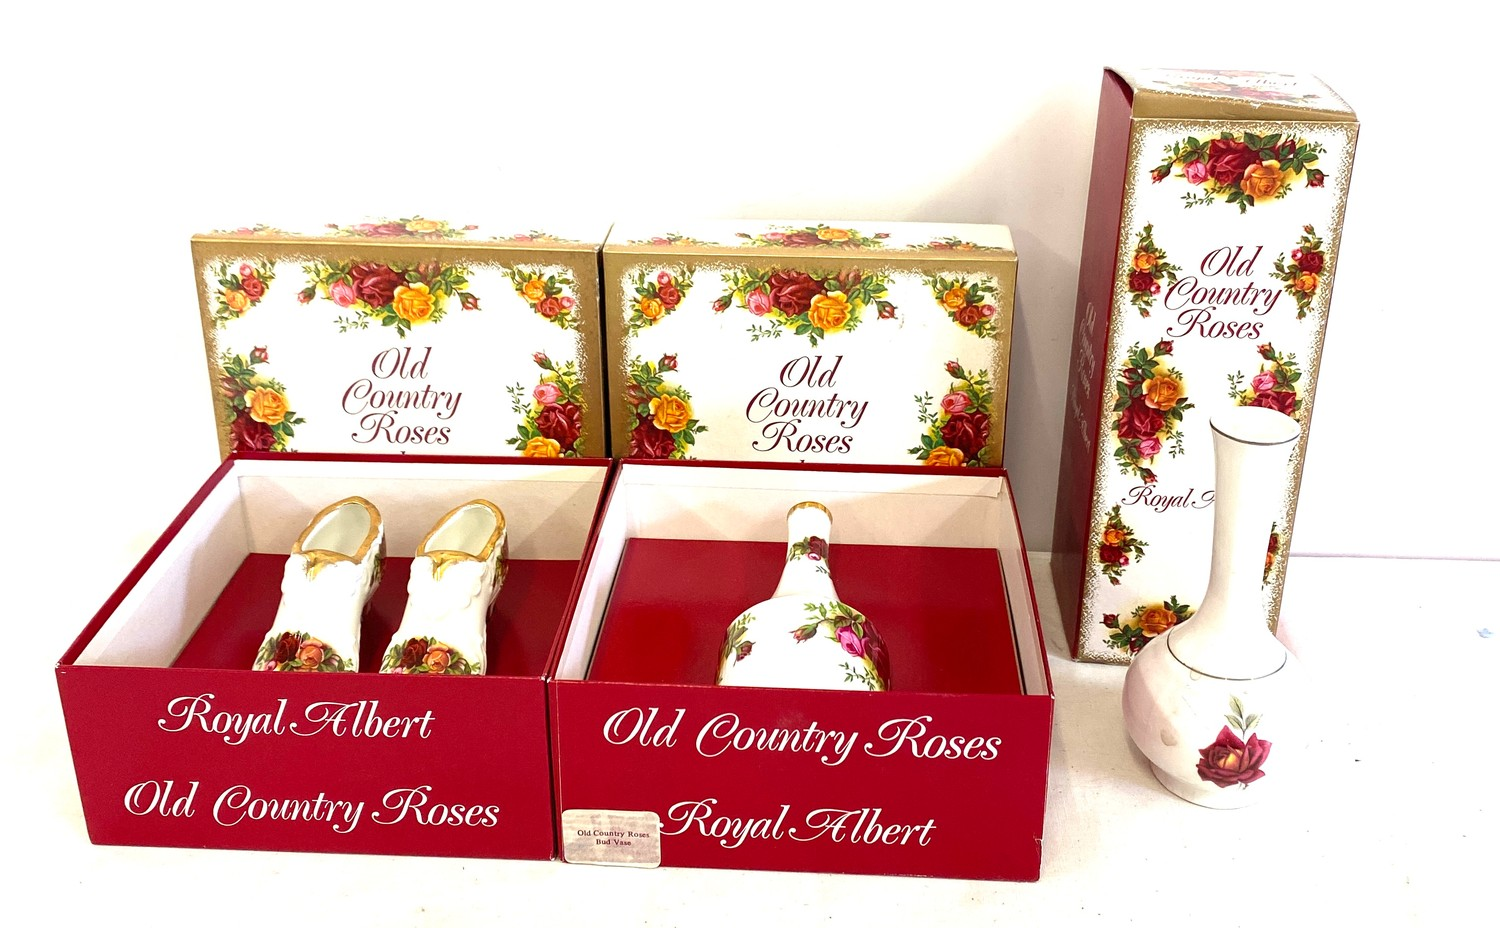 3 Boxed Royal Albert Old Country Roses pottery pieces includes vases etc